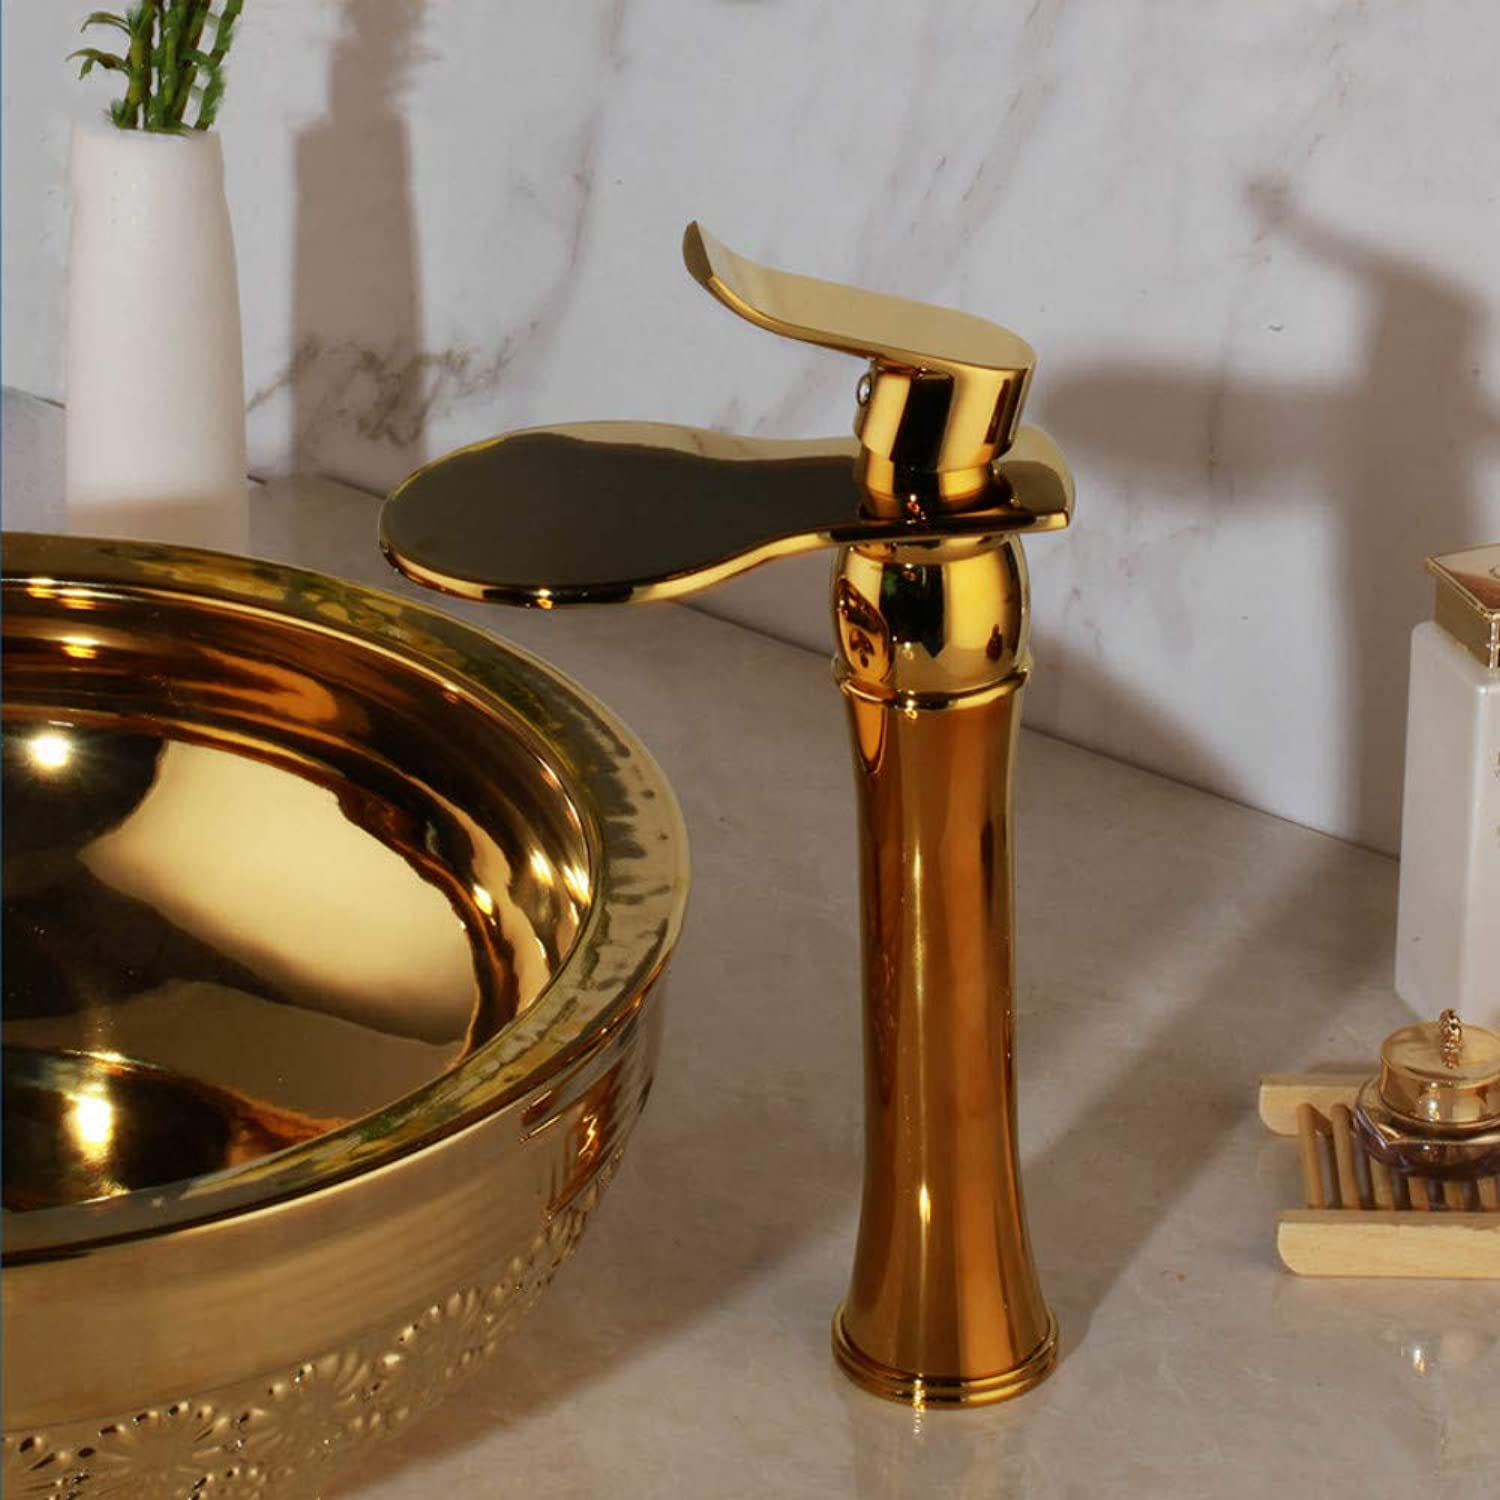 Luxury Tall Single Hole Handle Polished gold Wide Waterfall Spout Bathroom Wash Basin Sink Mixer Tap Faucet